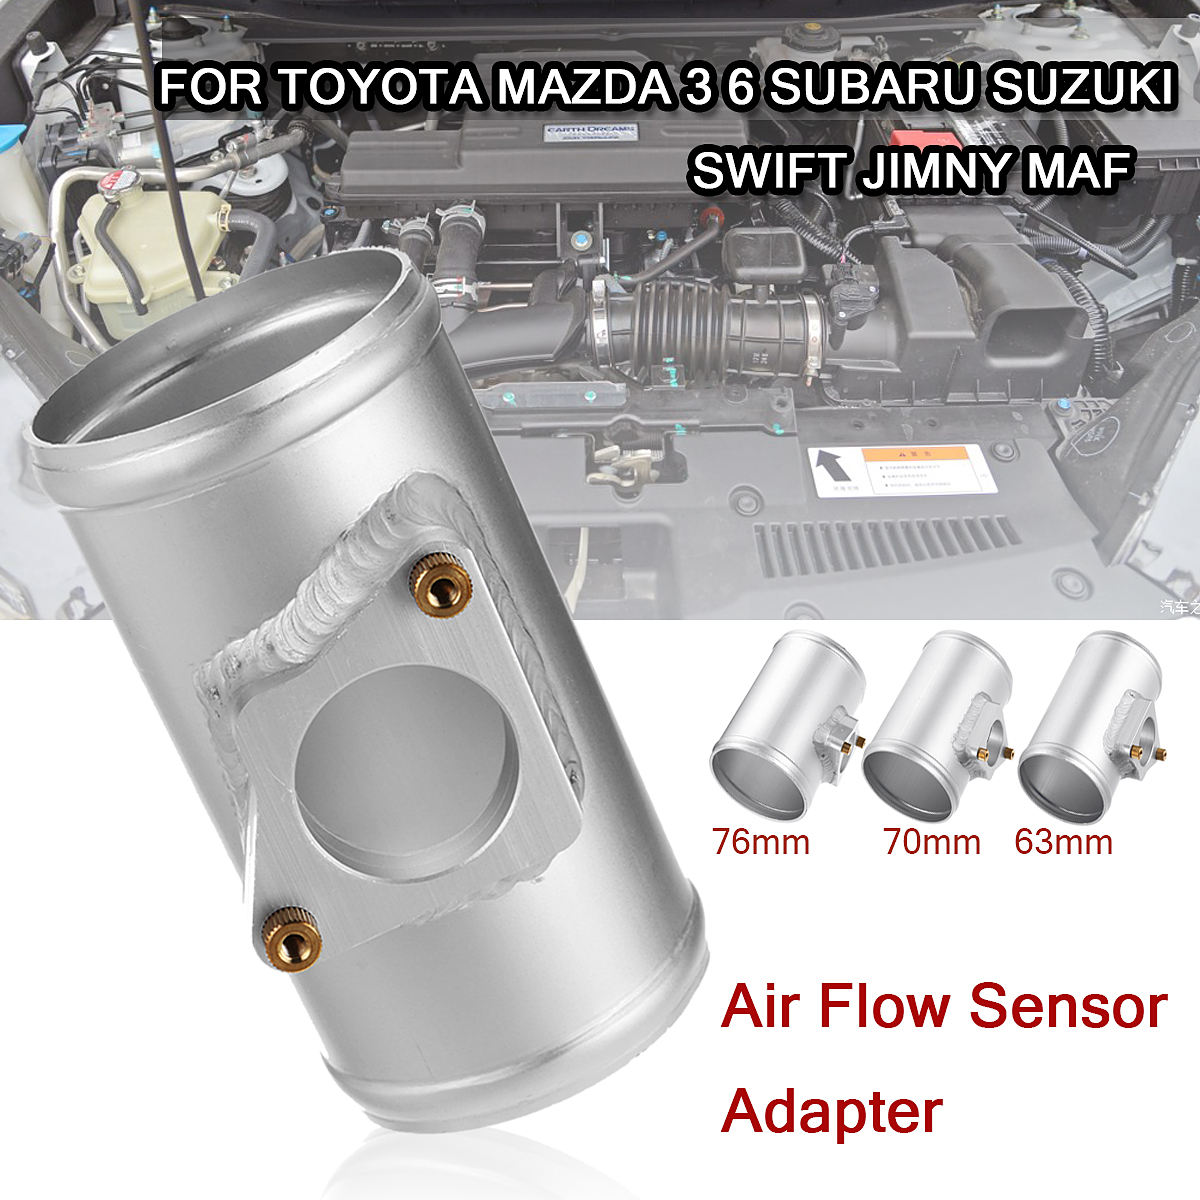 63/70/76mm Car Air Flow Sensor Adapter Performance Air Intake Meter Mount for Toyota/Mazda 3 6 for Subaru/Suzuki Swift цена